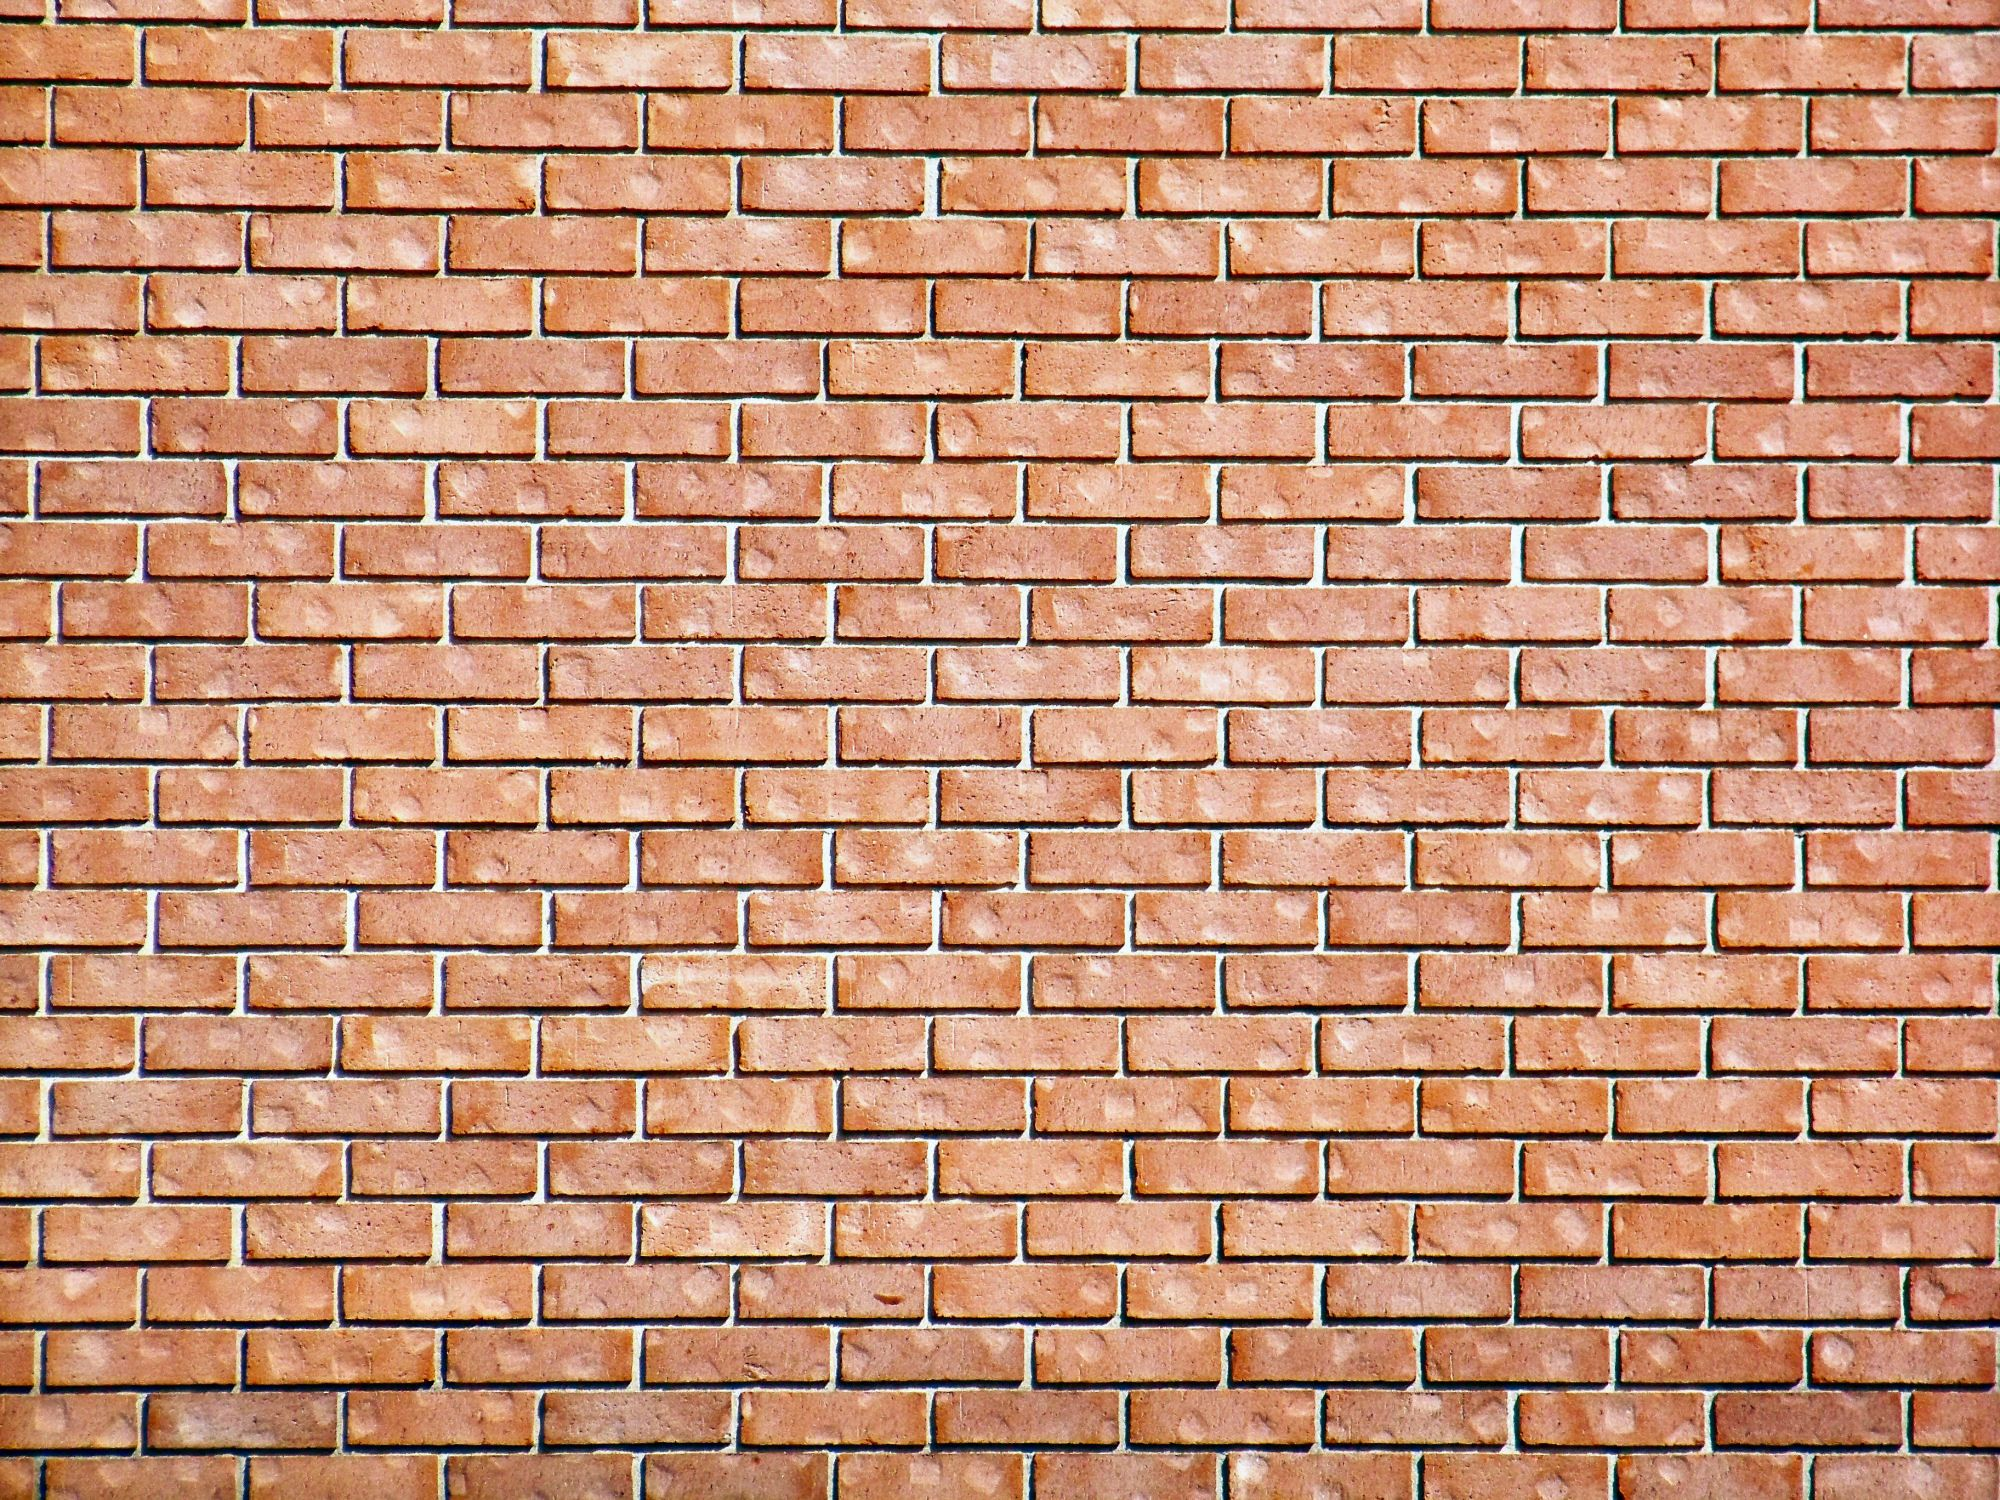 Brick wall backgrounds psd vector eps jpg download 2000 for Wallpaper images for house walls